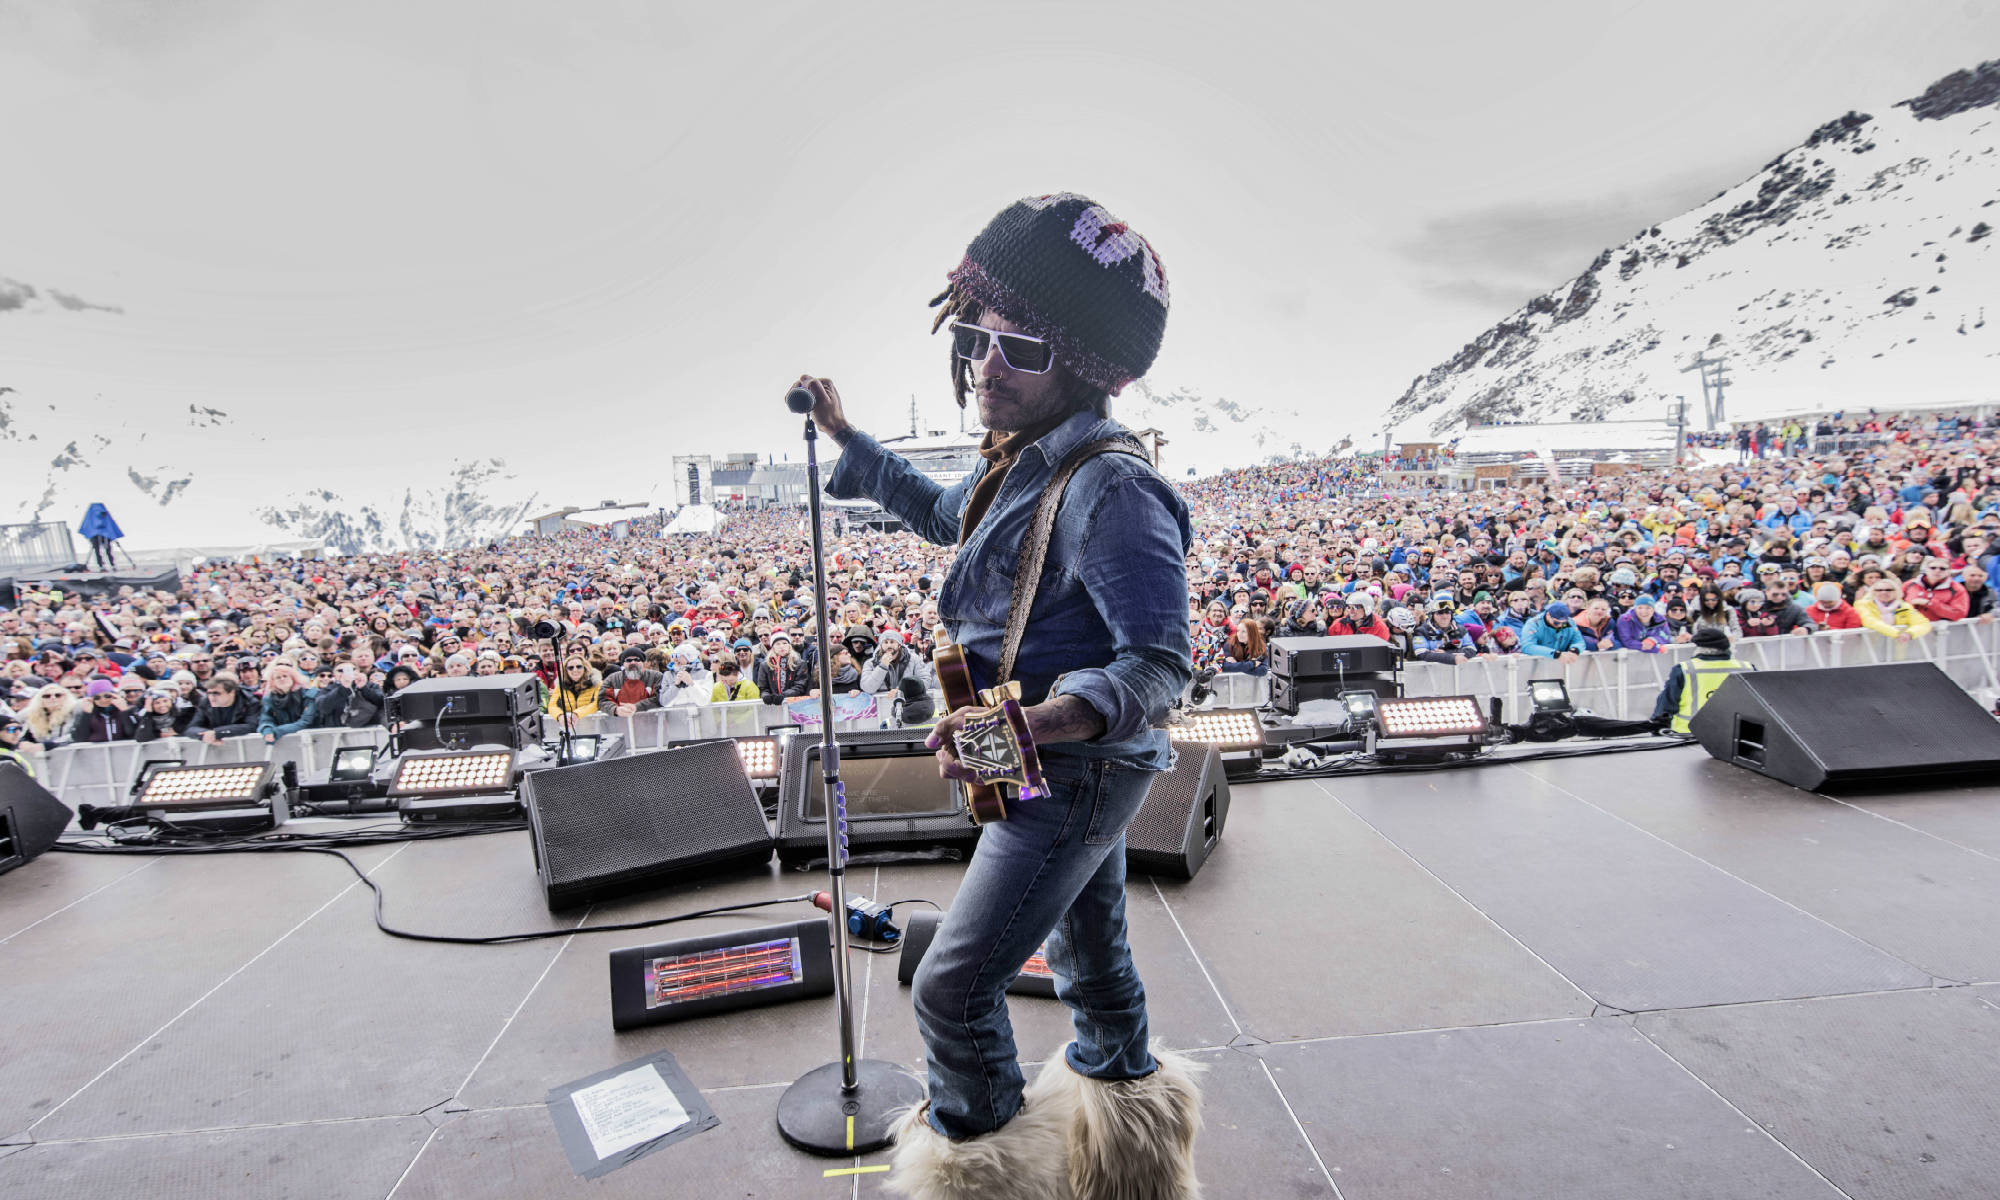 Lenny Kravitz op het podium tijdens het Top of the Mountain Closing Concert in 2019.